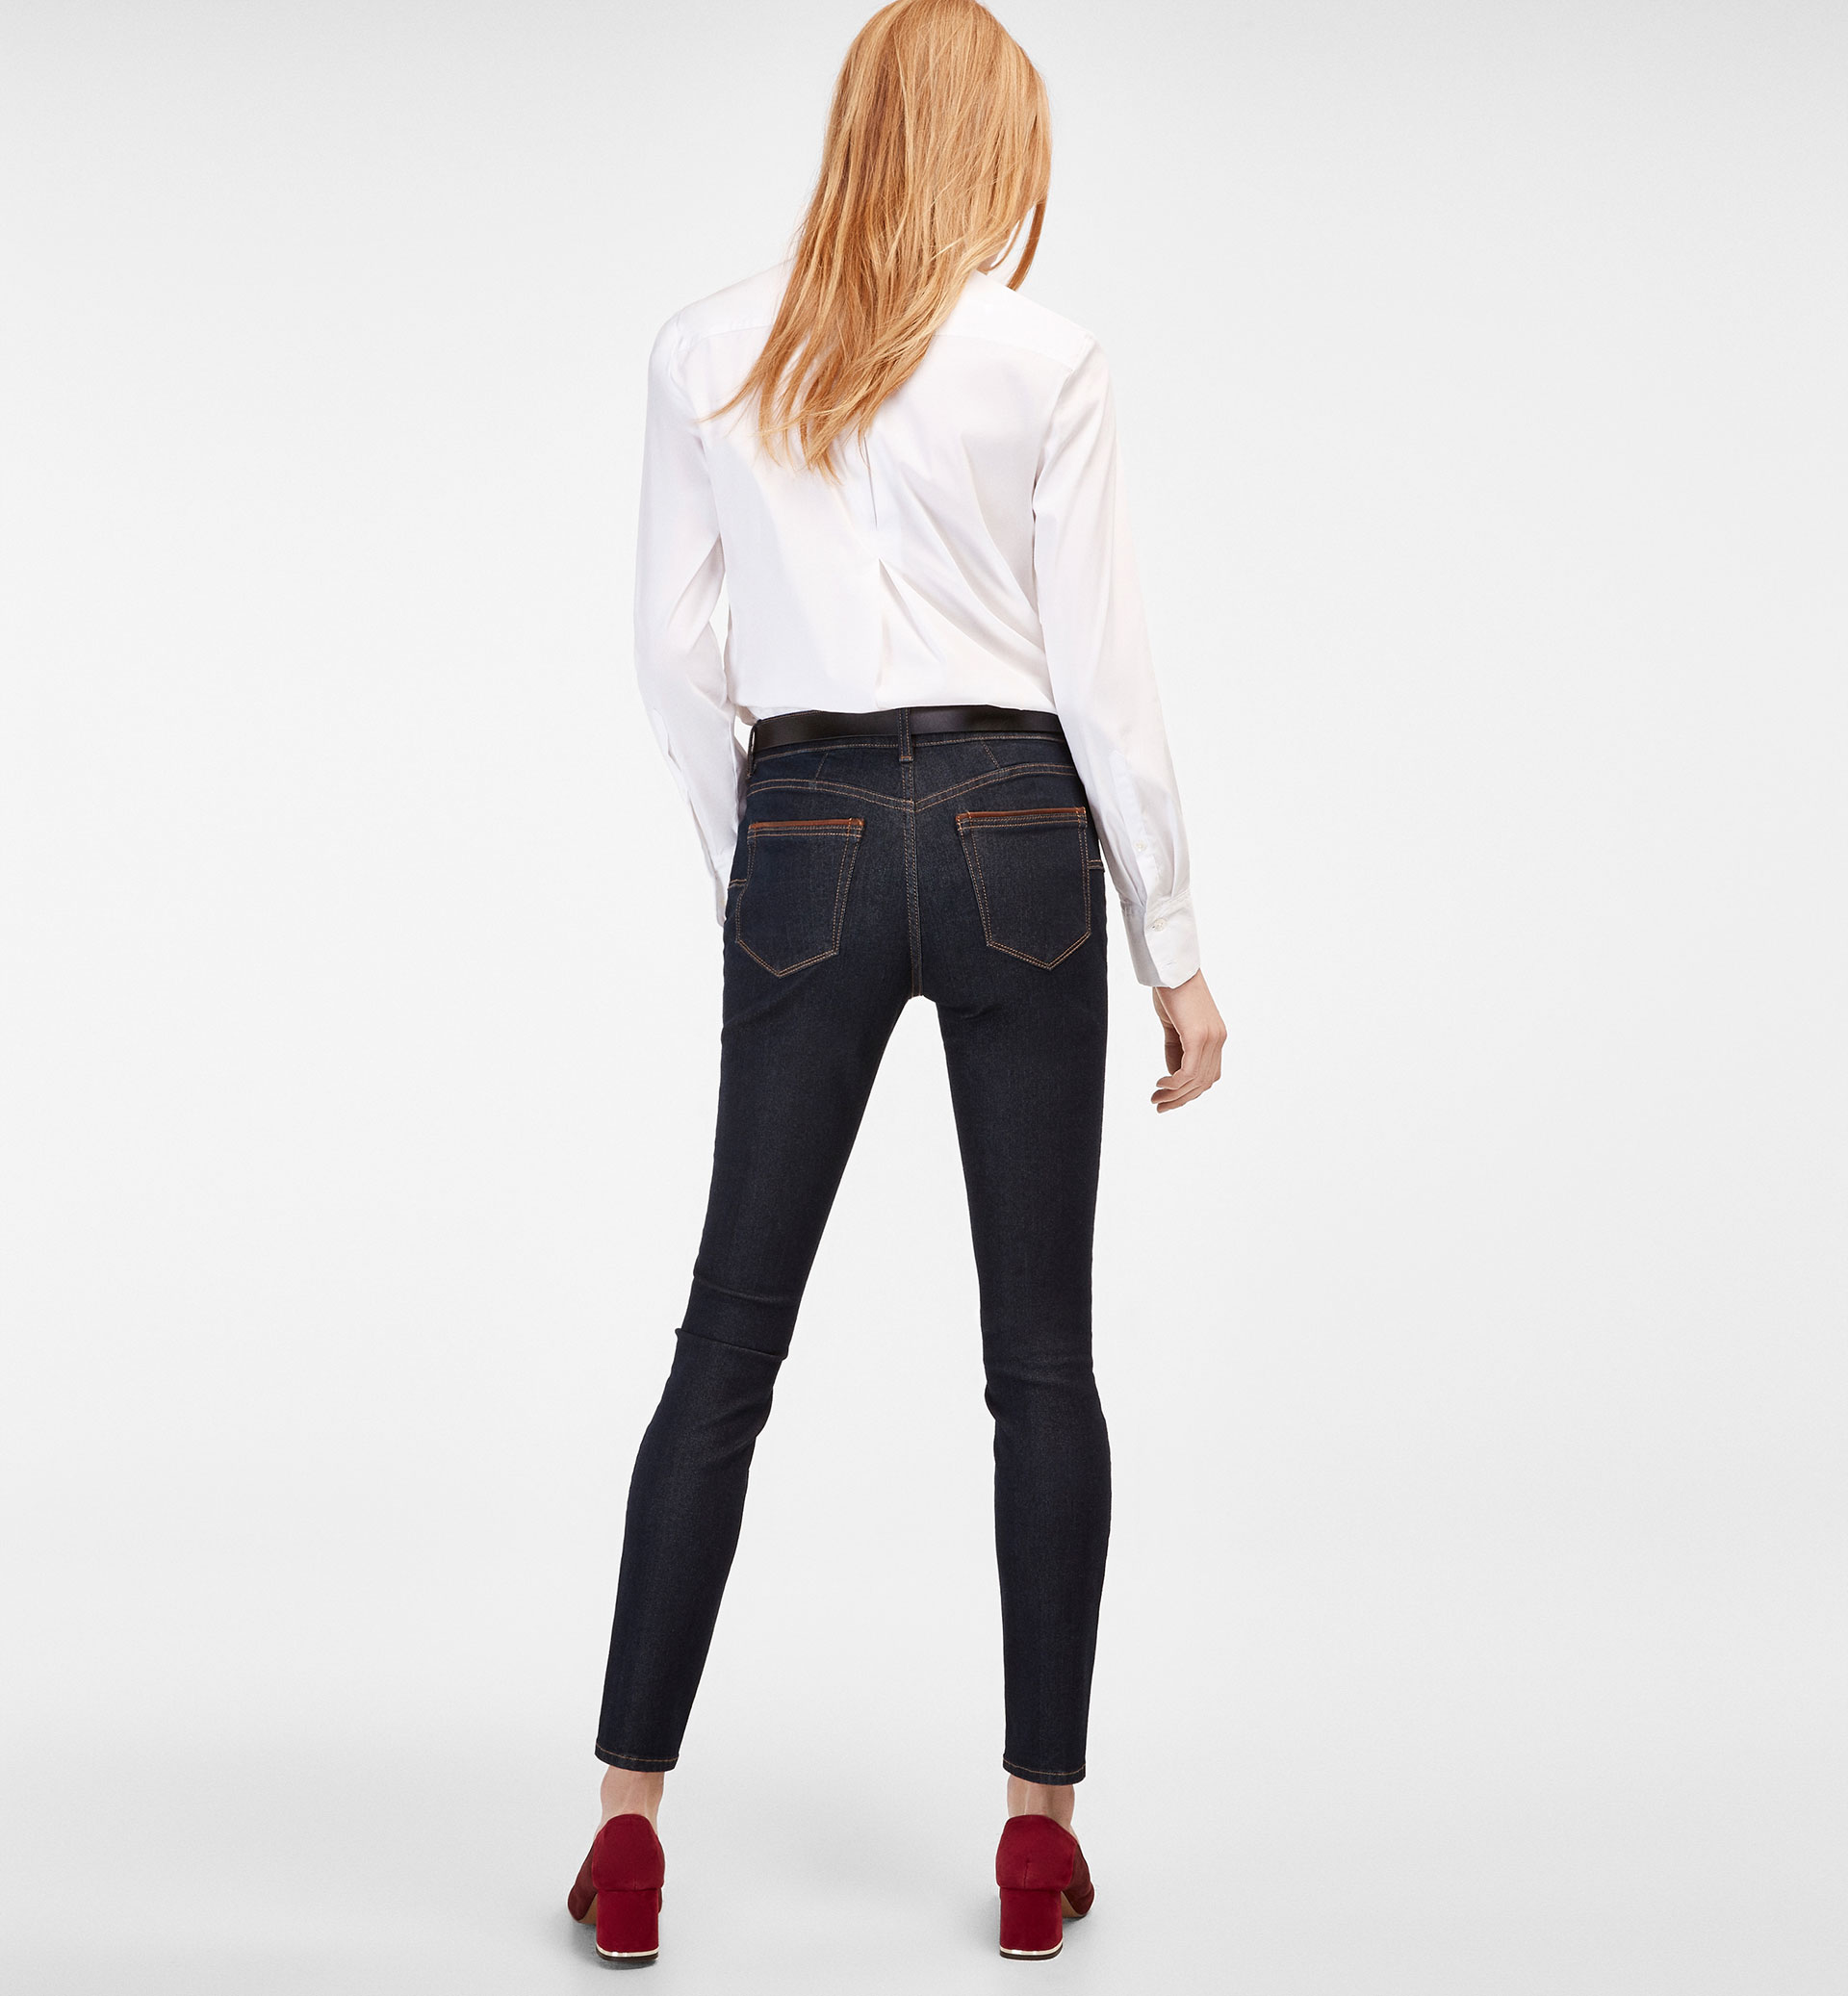 SKINNY JEANS WITH LEATHER DETAIL